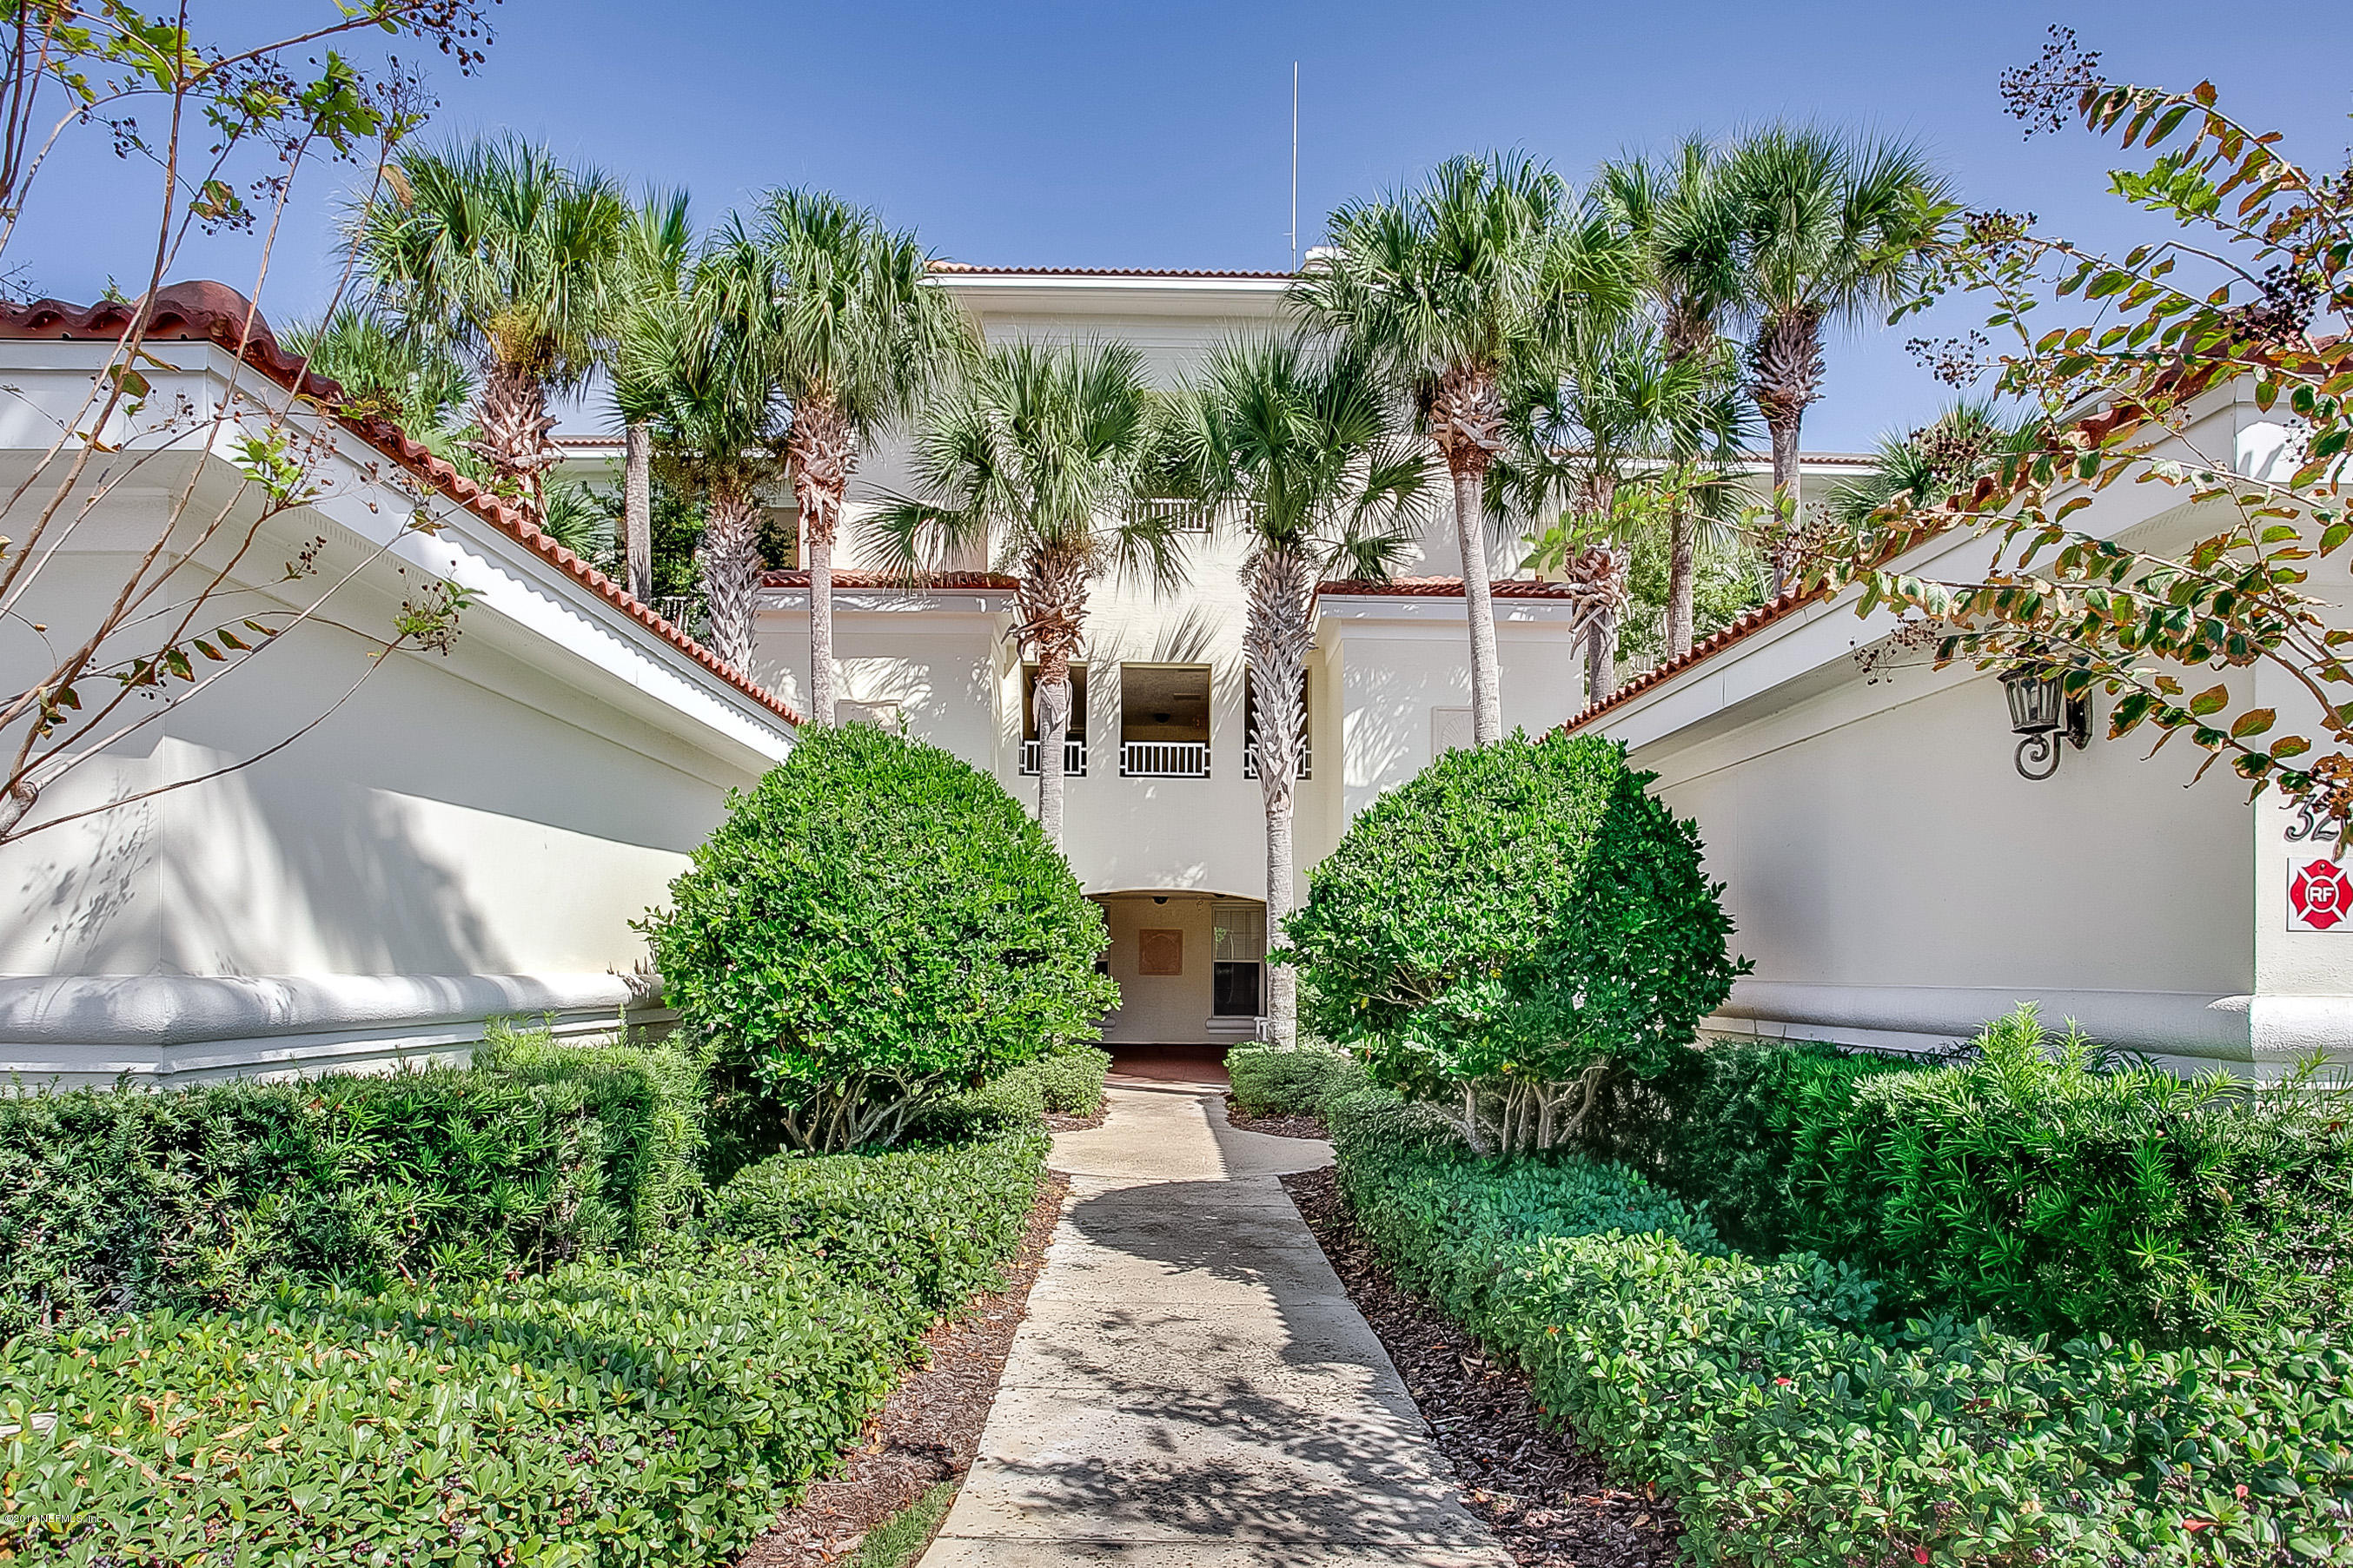 320 OCEAN GRANDE, PONTE VEDRA BEACH, FLORIDA 32082, 3 Bedrooms Bedrooms, ,3 BathroomsBathrooms,Residential - condos/townhomes,For sale,OCEAN GRANDE,964765